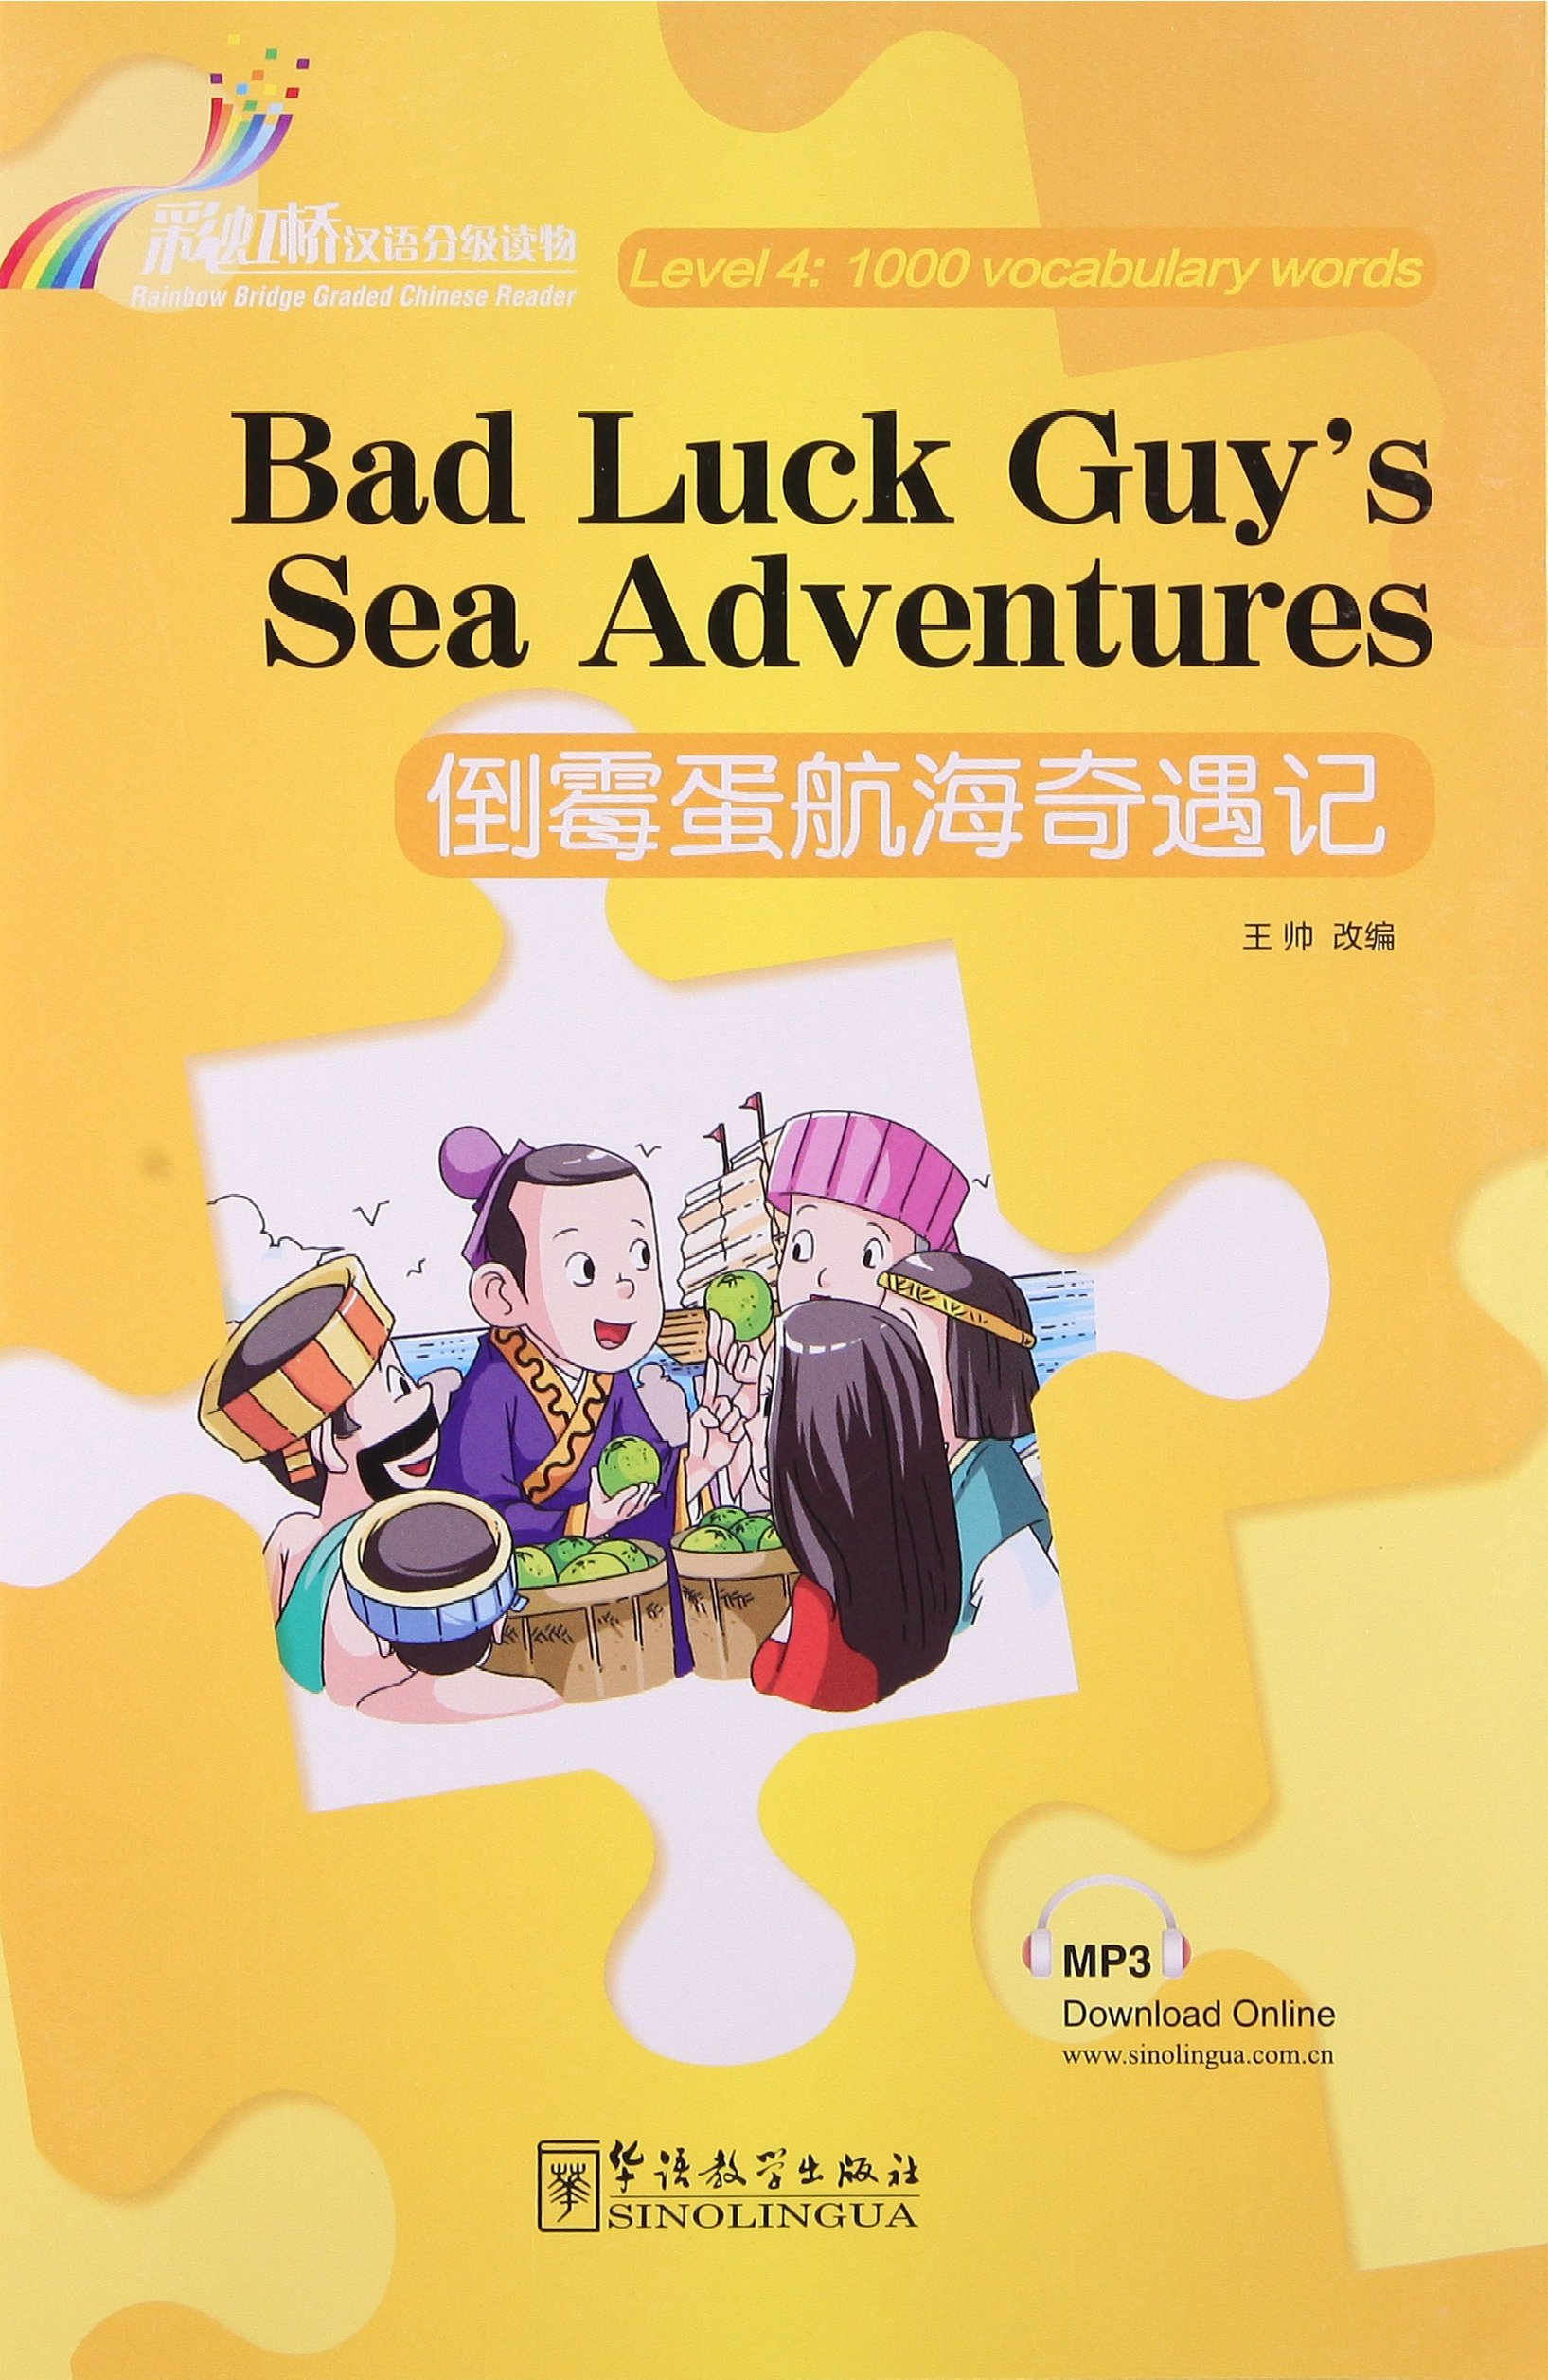 Bad Luck Guy's Sea Adventures - Rainbow Bridge Graded Chinese Reader, Level 4: 1000 Vocabulary Words